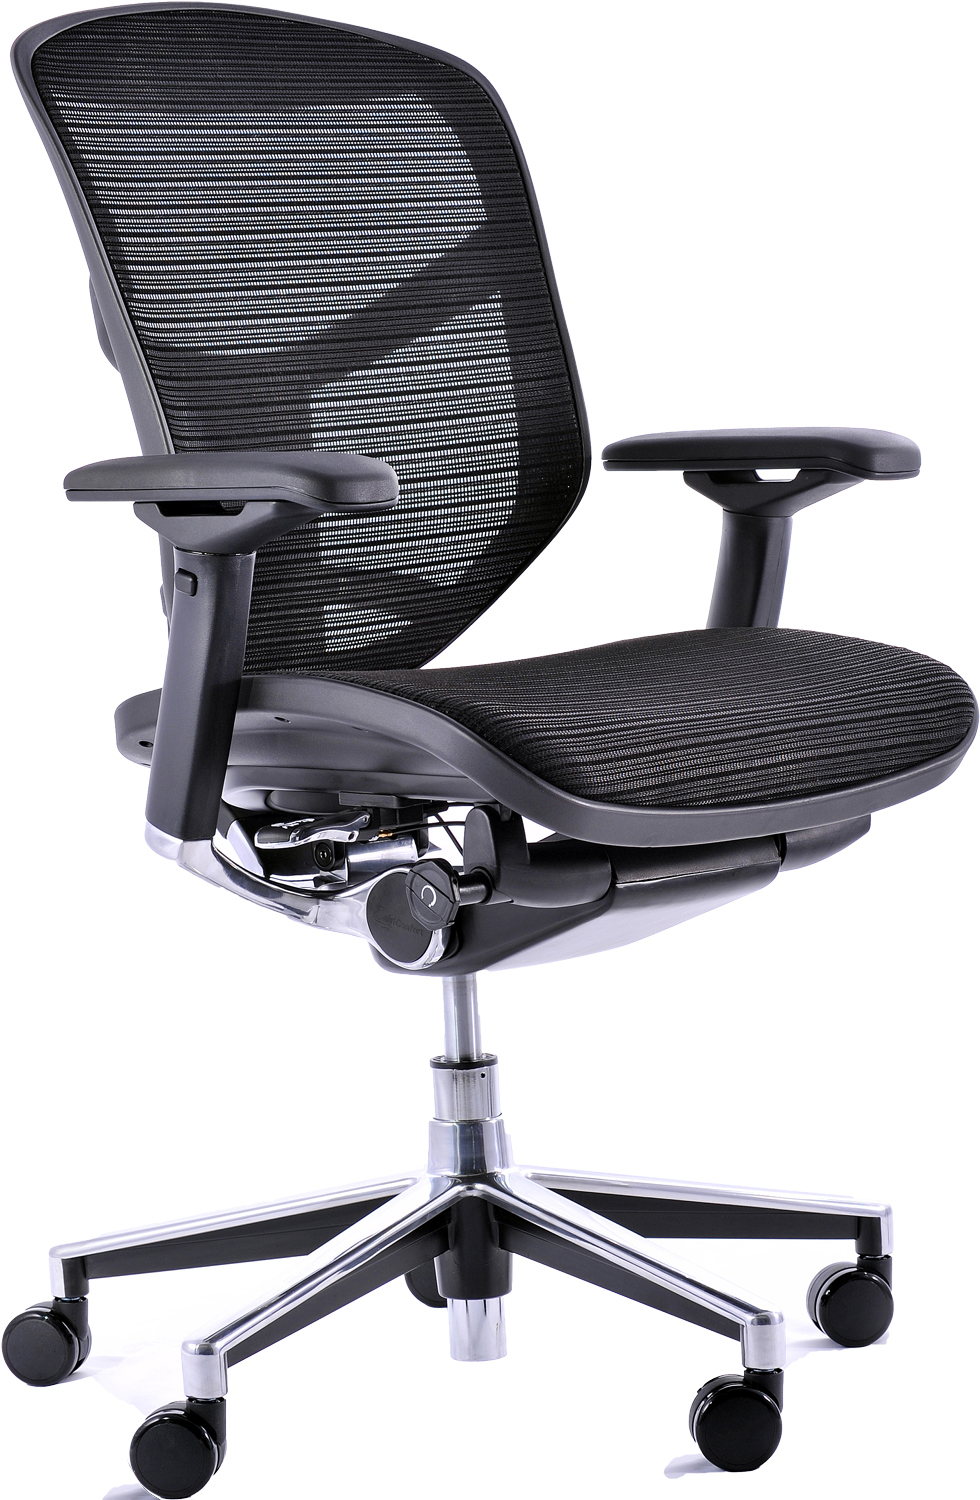 ergonomical office chair